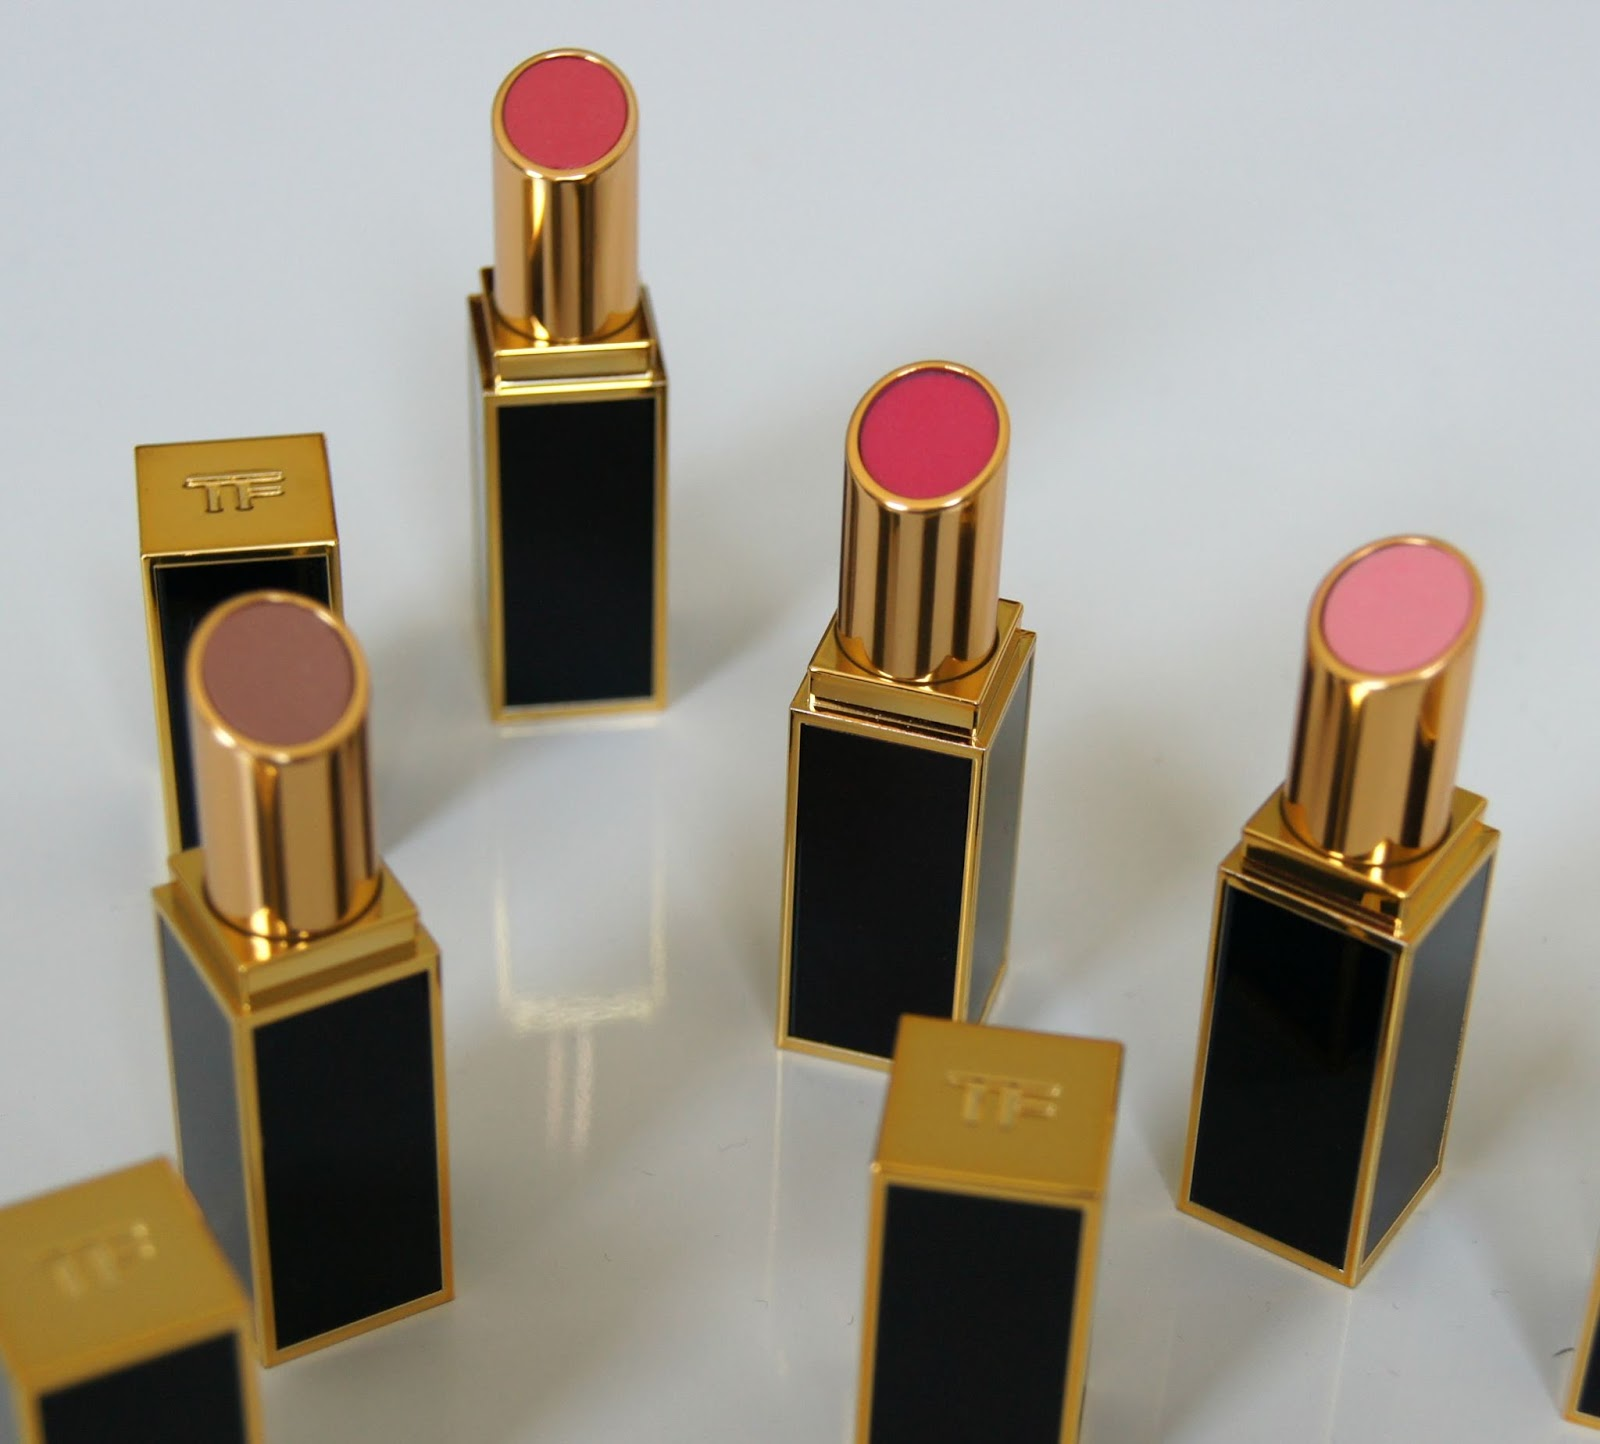 Tom Ford Lip Colour Shine review